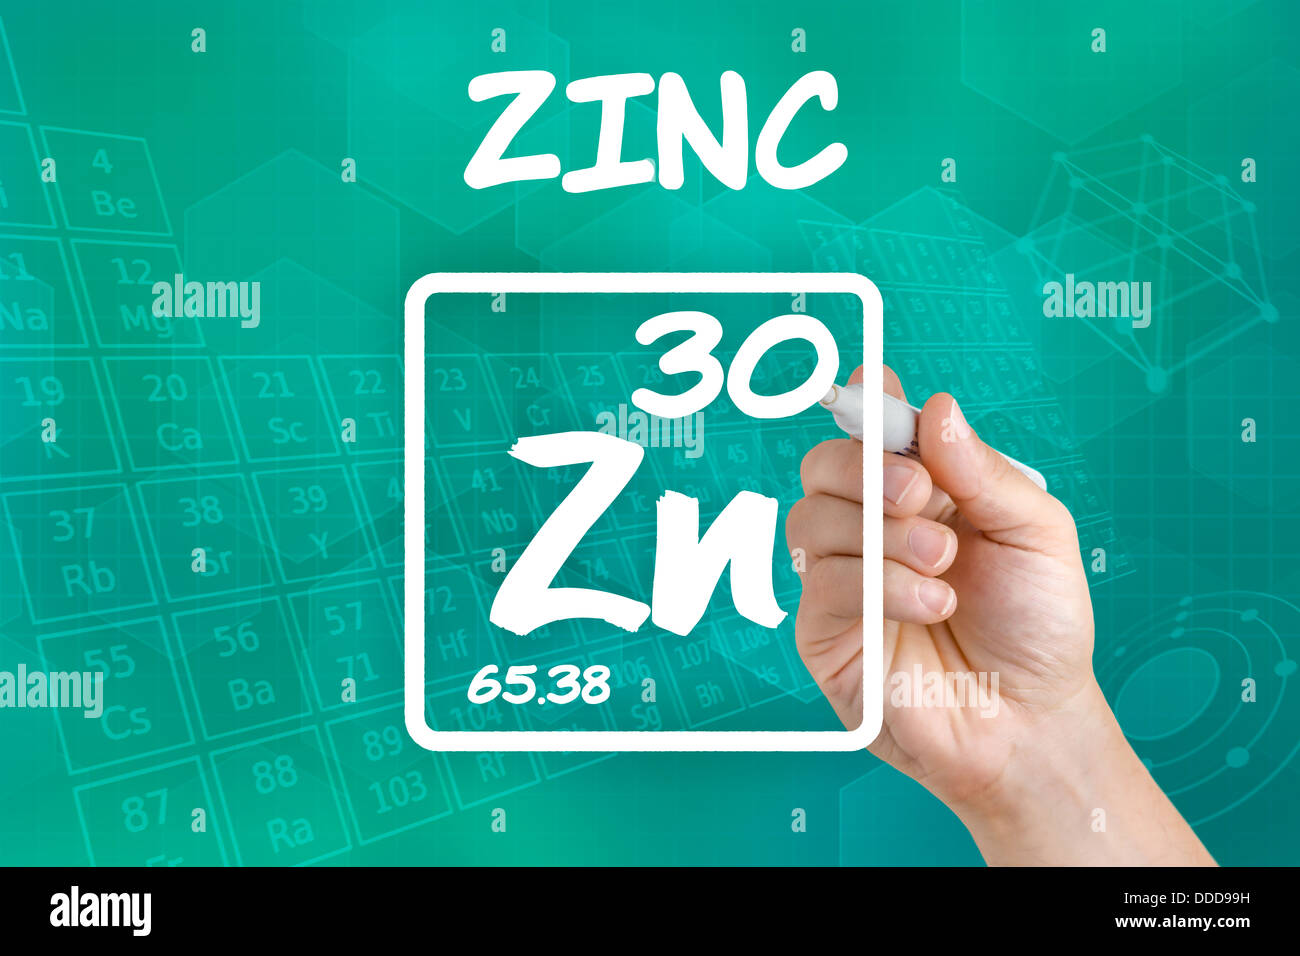 Chemical Symbol Zn Stock Photos Chemical Symbol Zn Stock Images